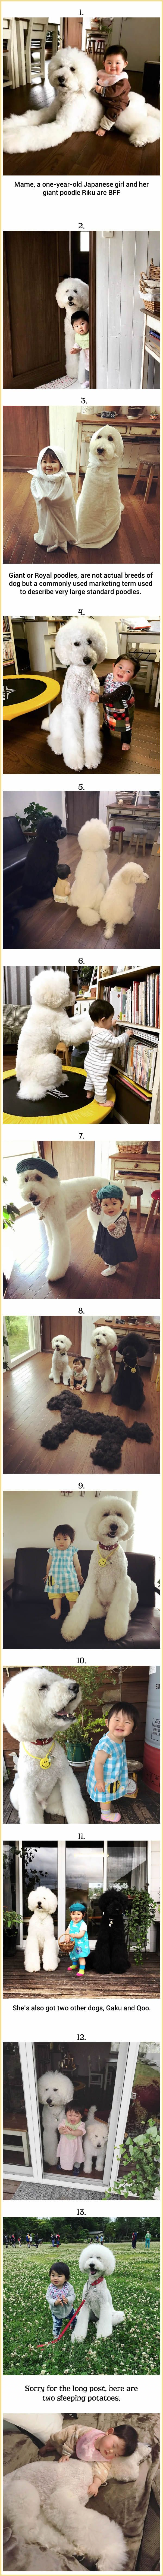 Cute Toddler And Fluffy Giant Dogs Make The Most Perfect Squad